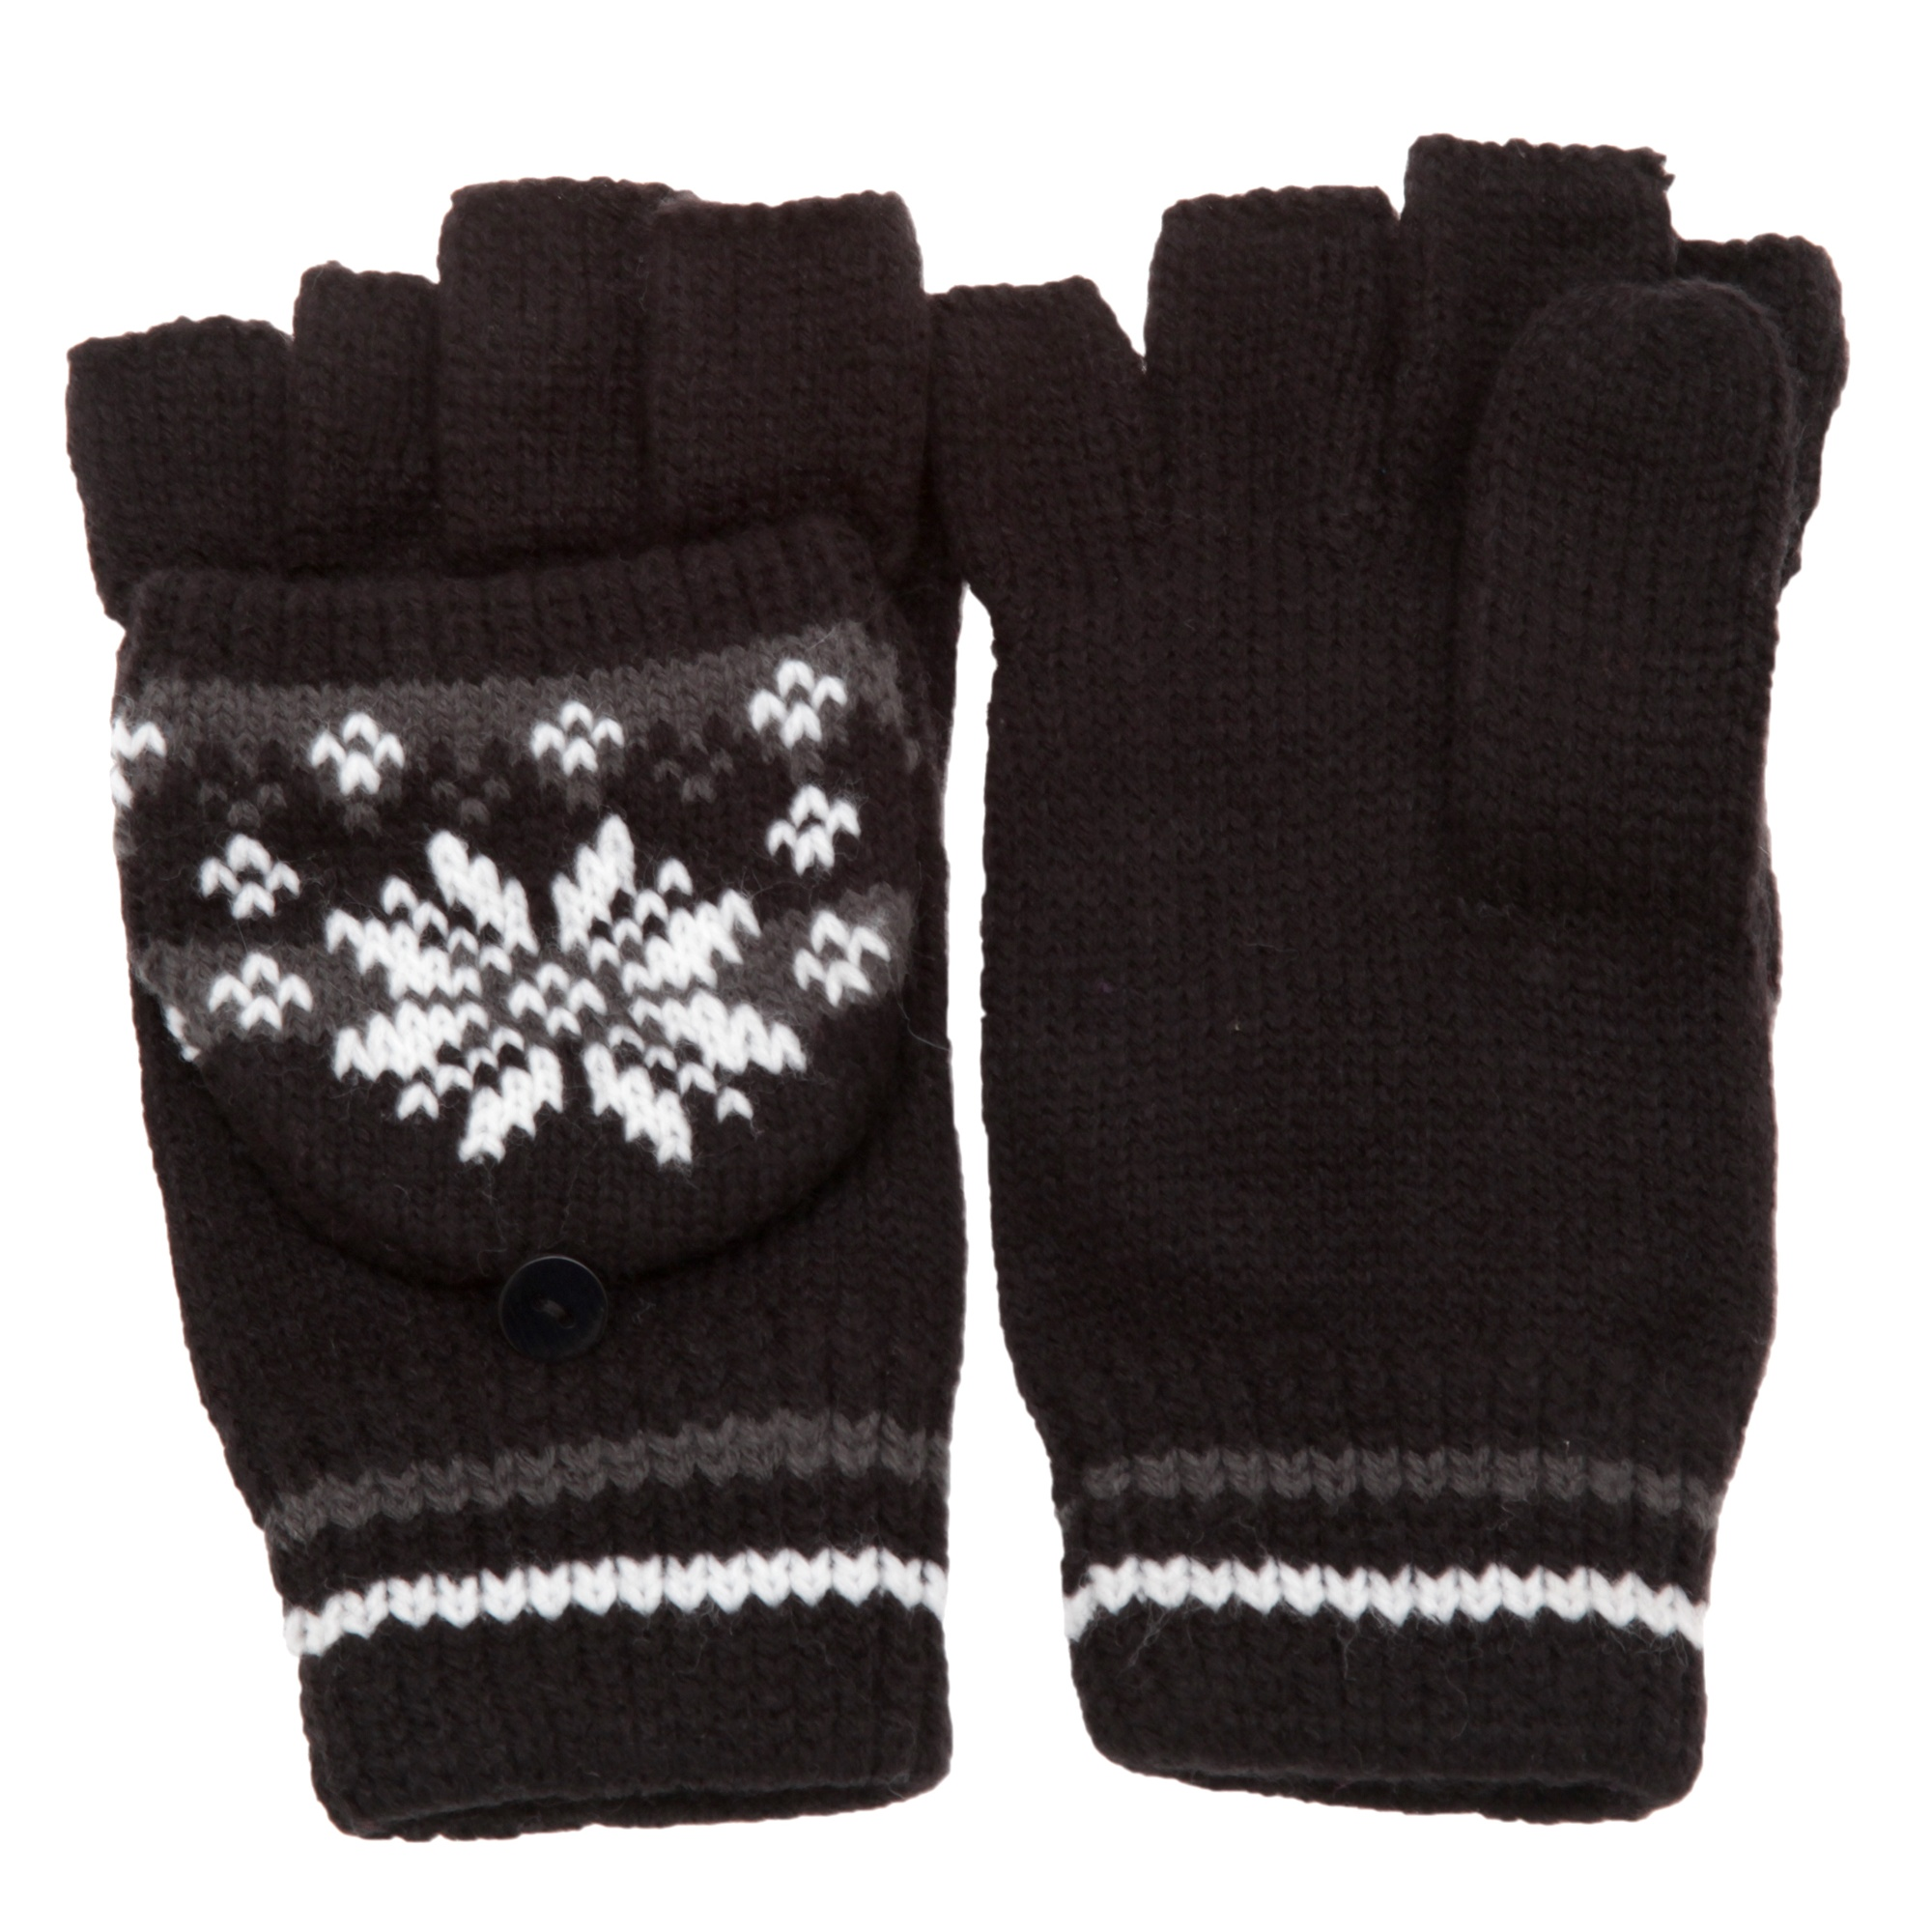 Women's Gloves: Free Shipping on orders over $45 at 0549sahibi.tk - Your Online Gloves Store! Get 5% in rewards with Club O!